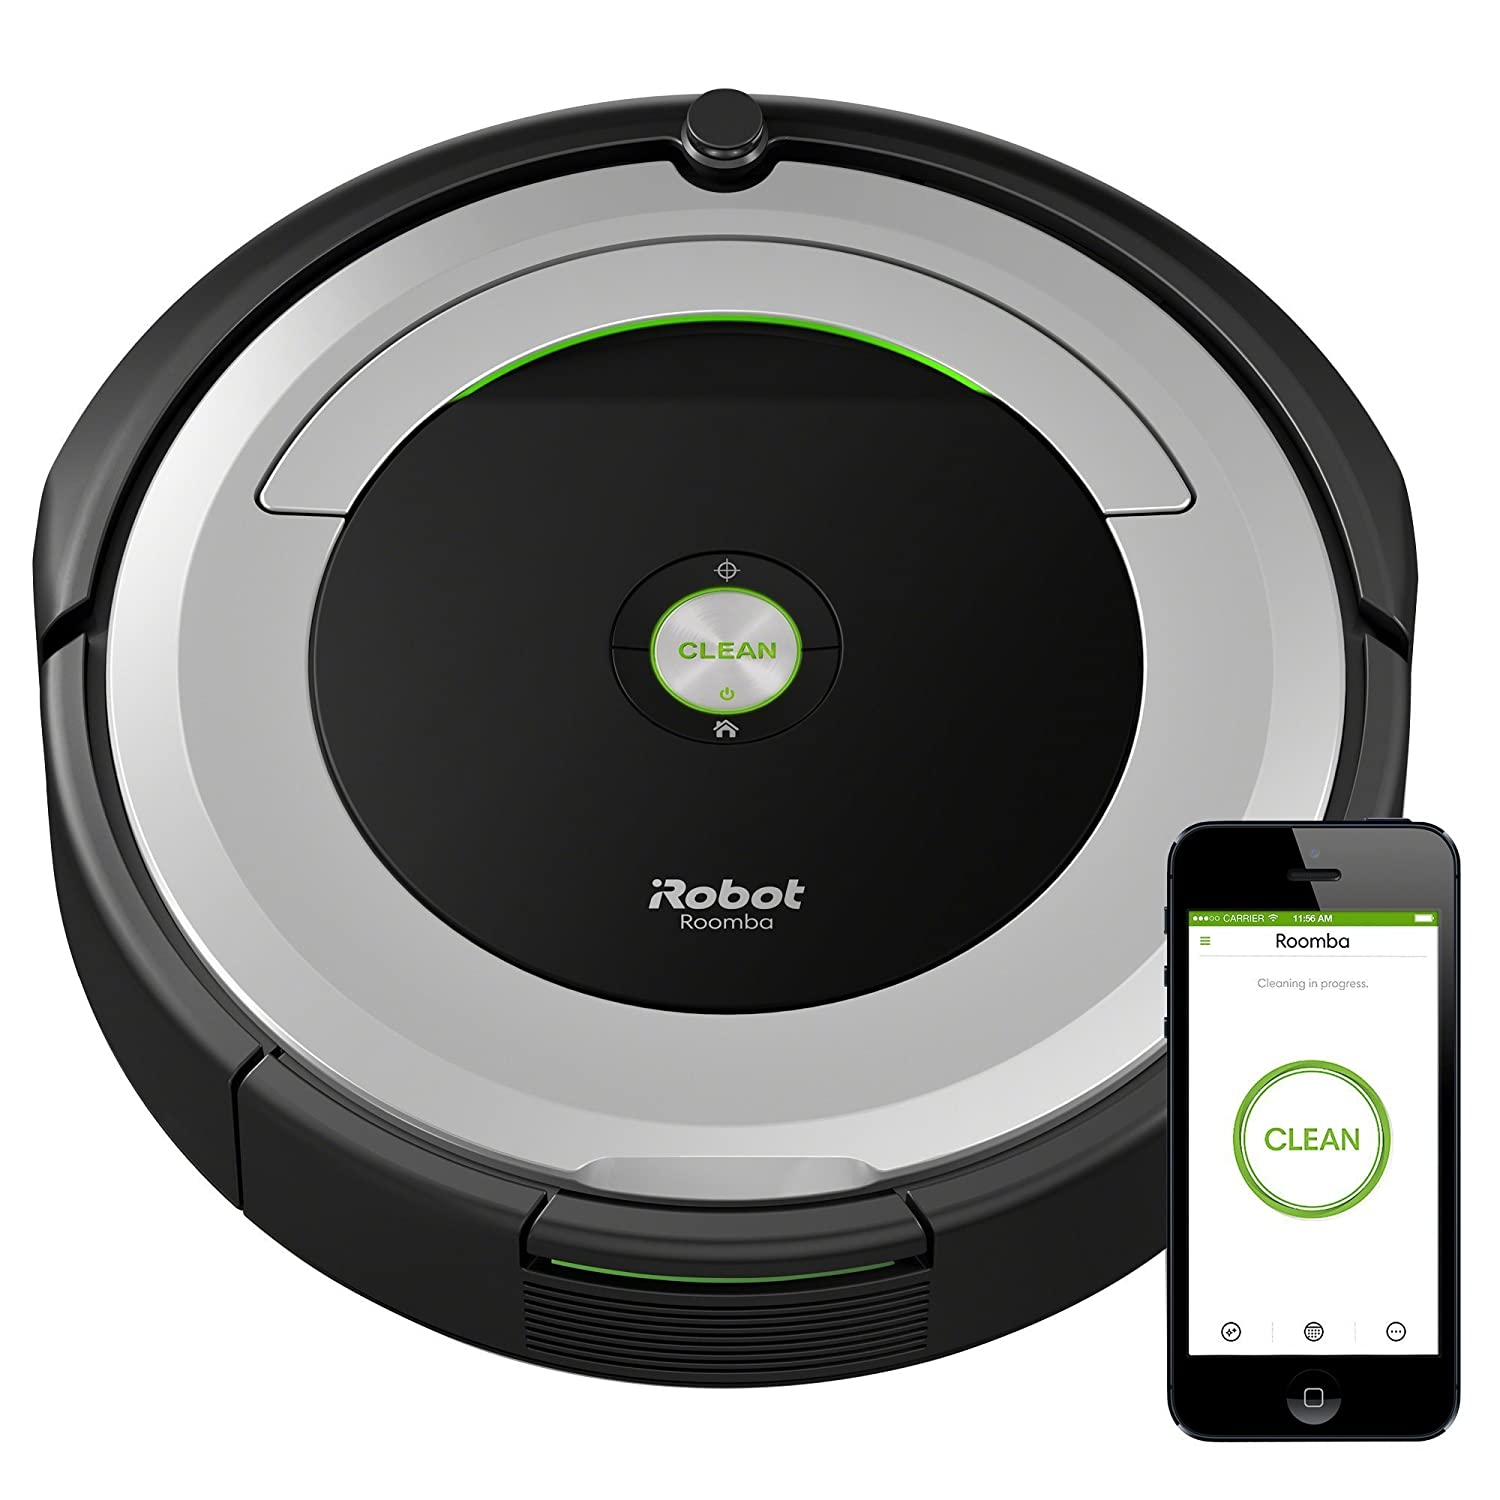 Amazon Echo - iRobot Roomba 690 Robot Vacuum